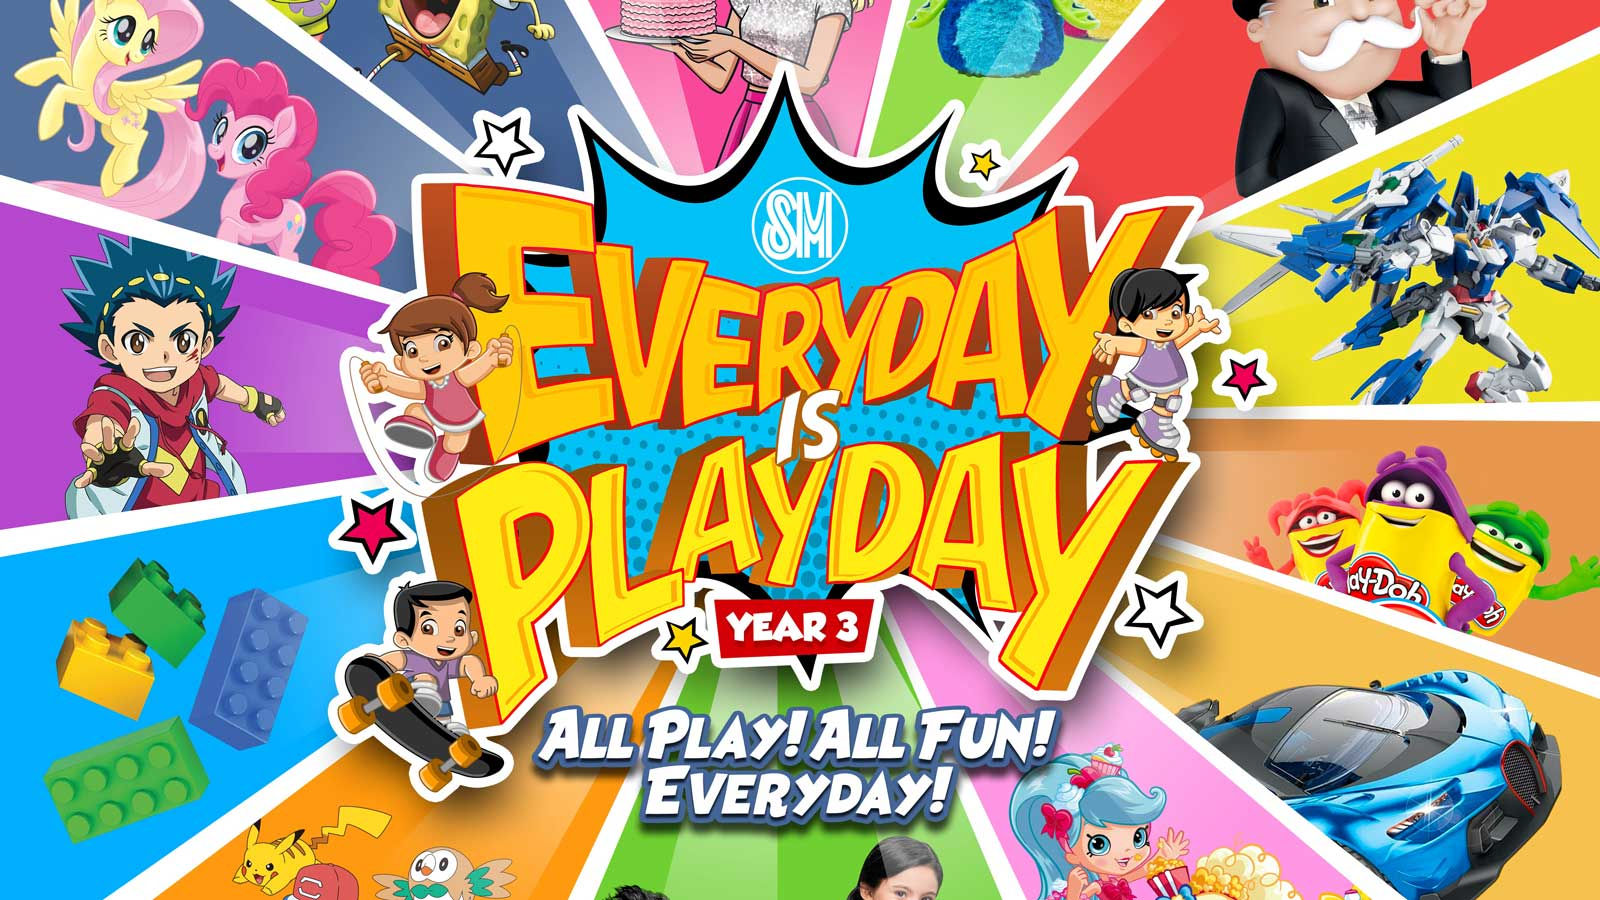 More summer fun with Everyday is Play Day Year 3